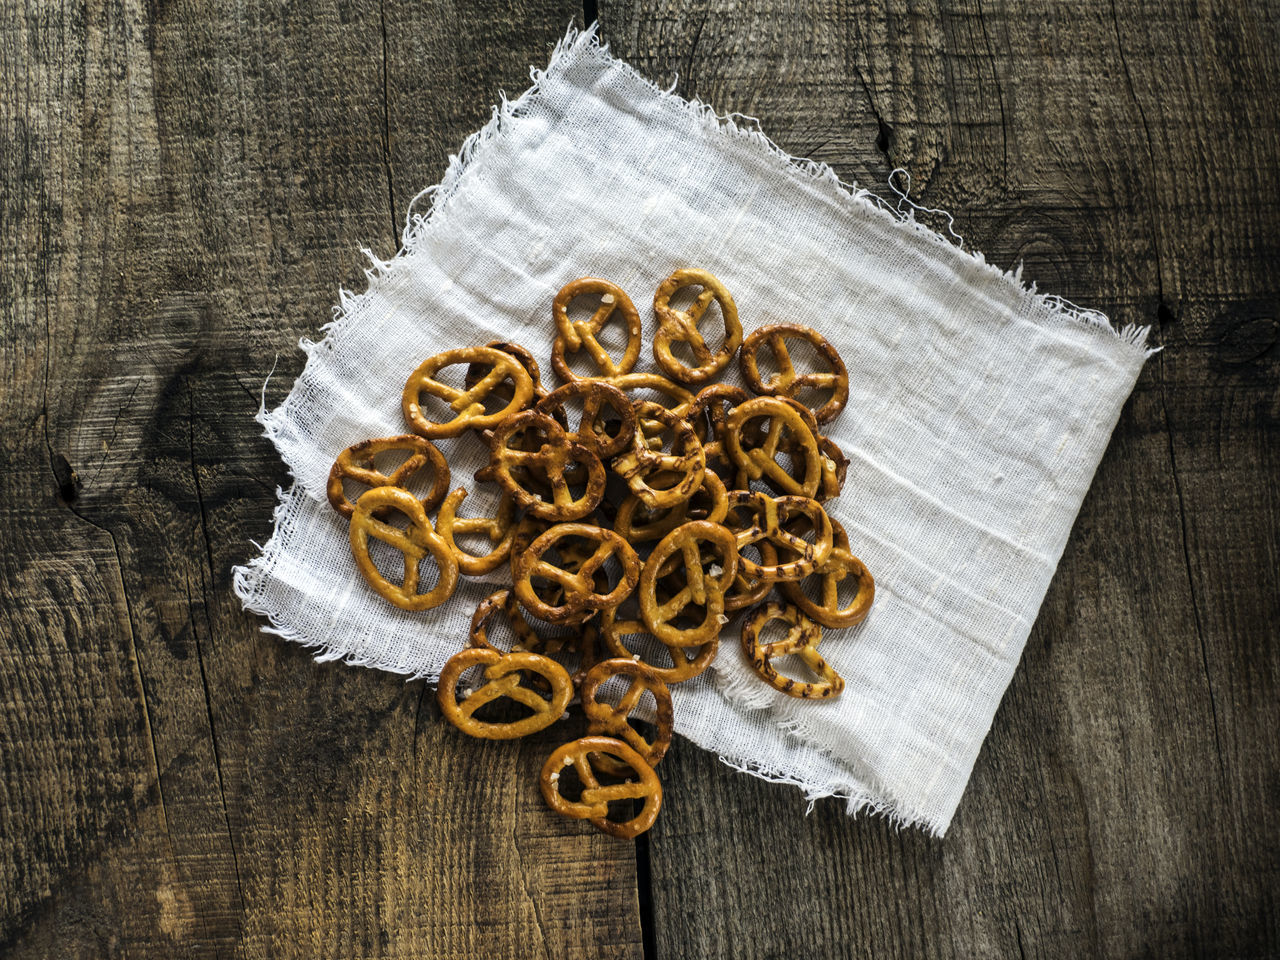 Heap of fresh Wheat salt pretzels on hessian linen fabric cloth and wooden table Cloth Collection Fabric Food And Drink Fresh Freshness Heap Hessian High Angle View Indoors  Large Group Of Objects Linen Pretzels Salt Spice Table Wheat Wooden